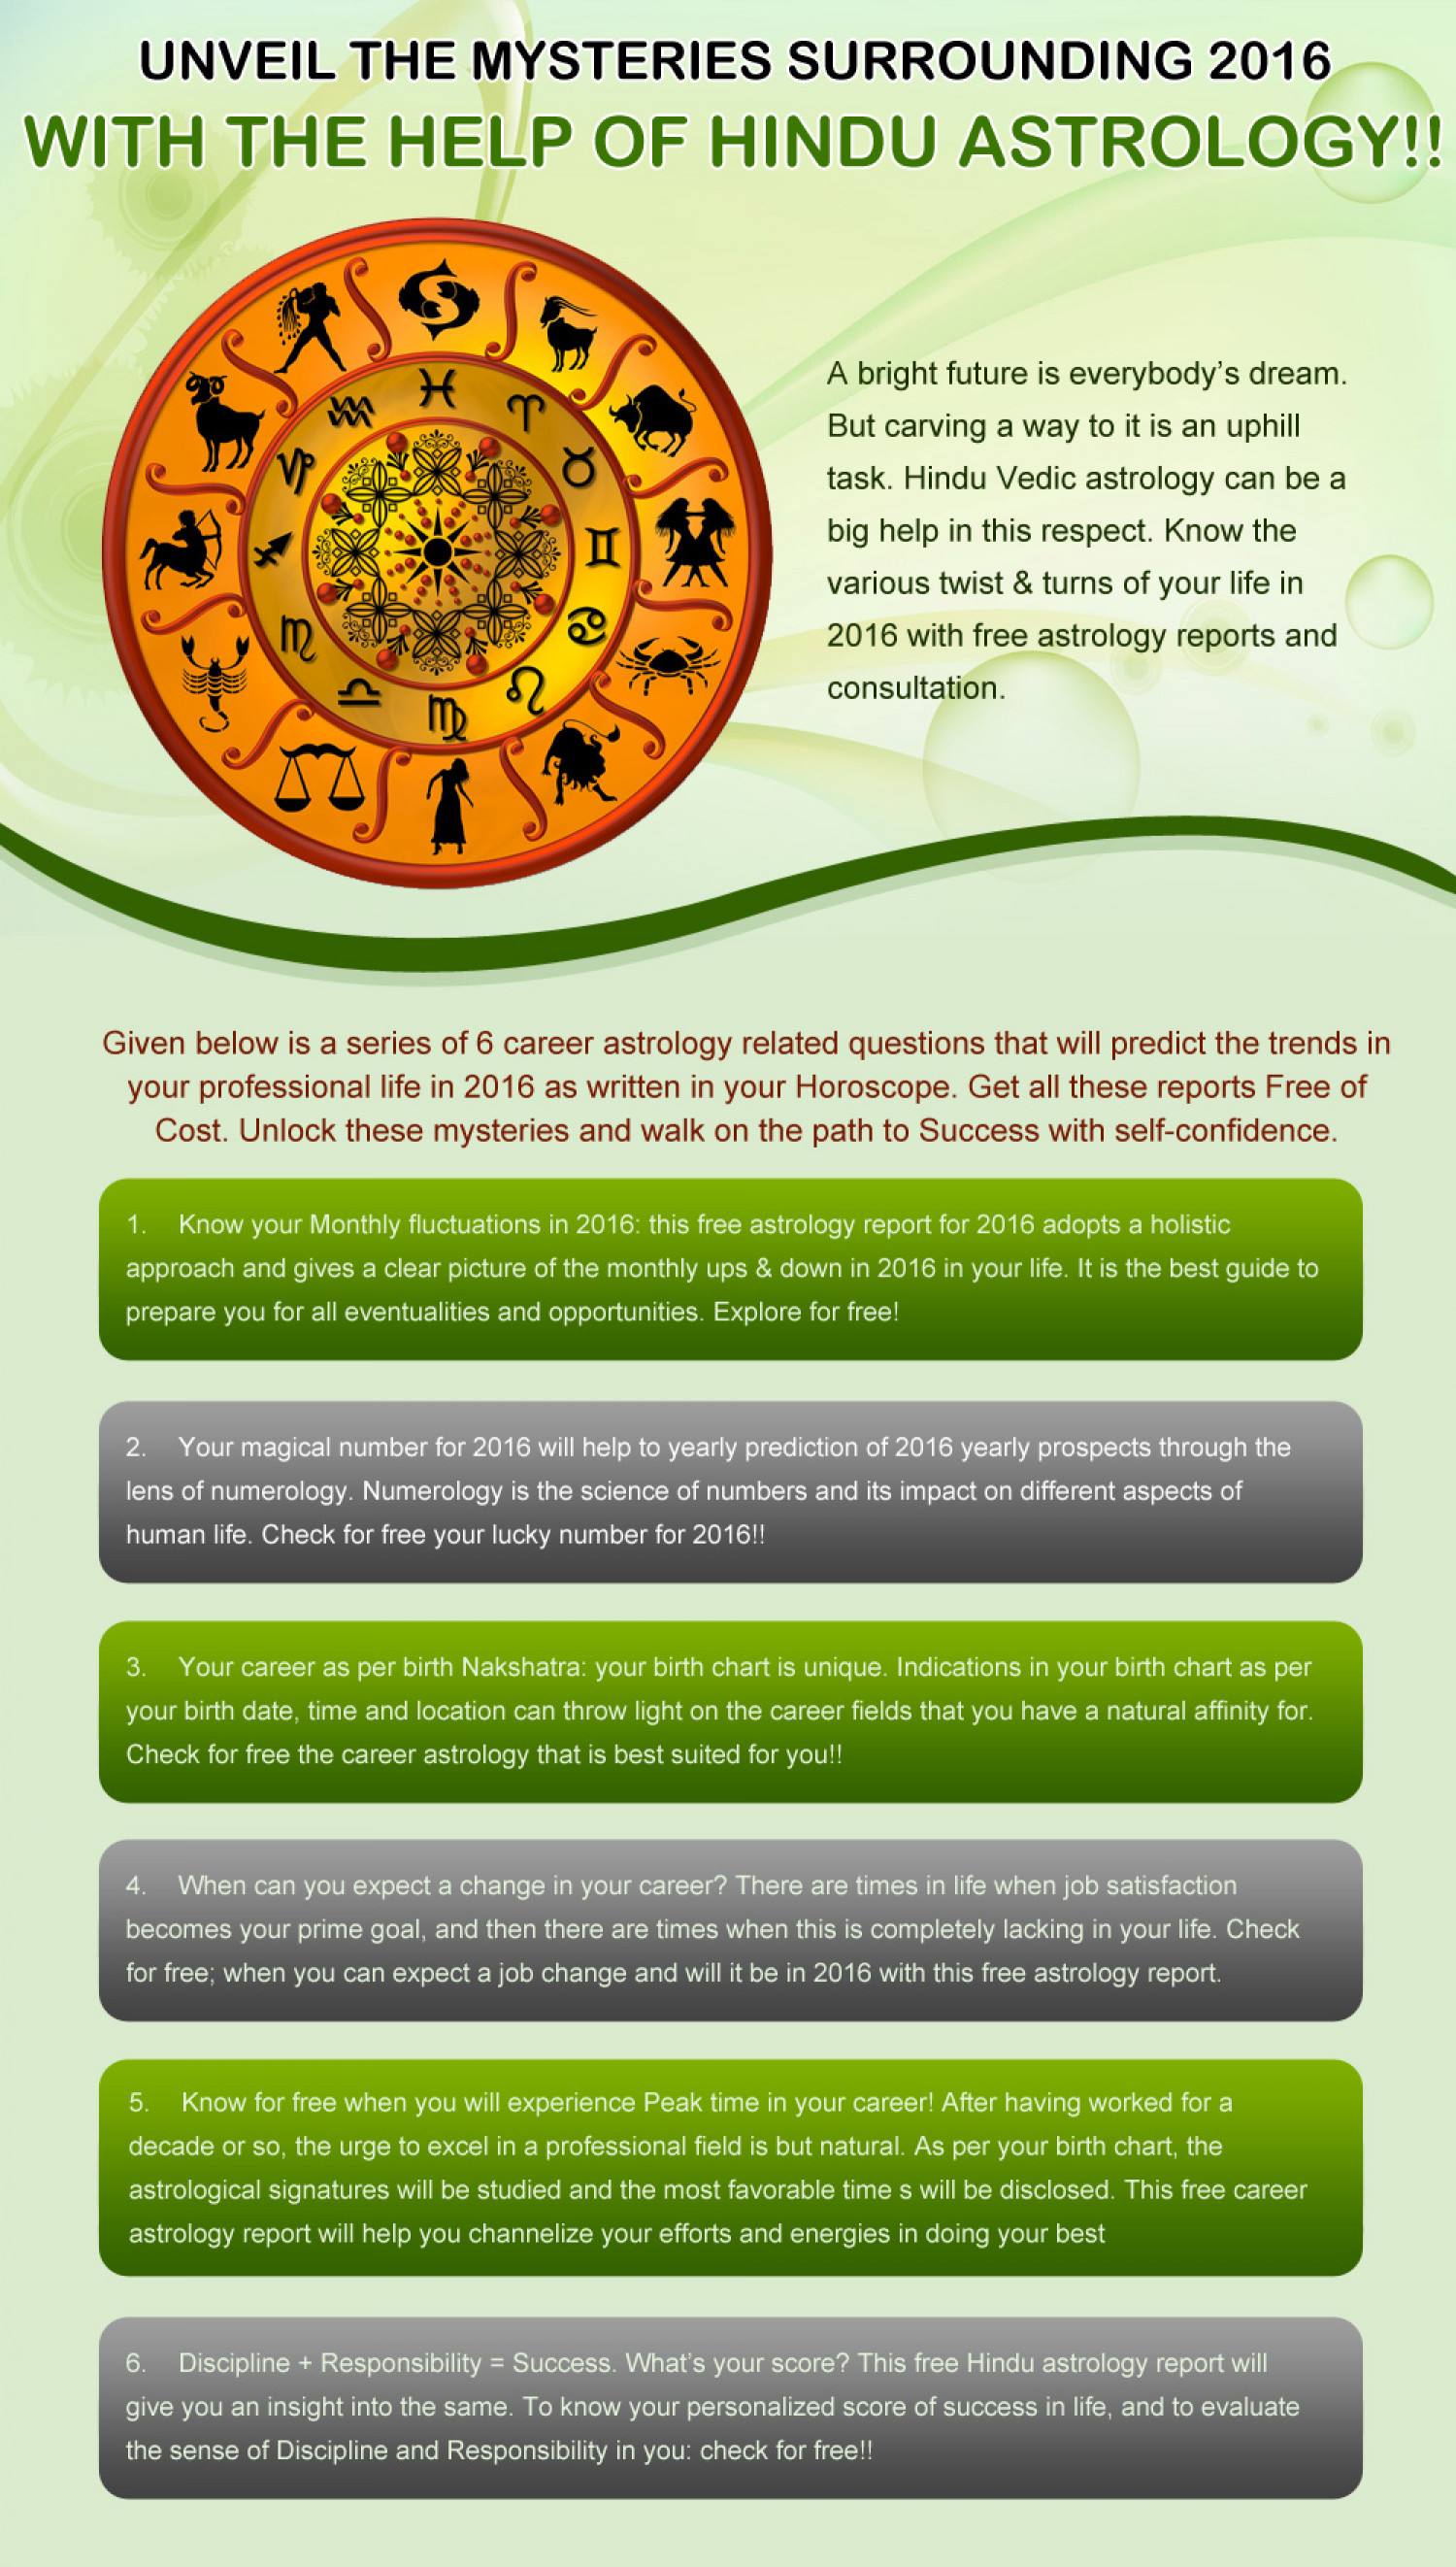 Unfold various mysteries around it with the help of hindu vedic unfold various mysteries around it with the help of hindu vedic astrology infographic nvjuhfo Images